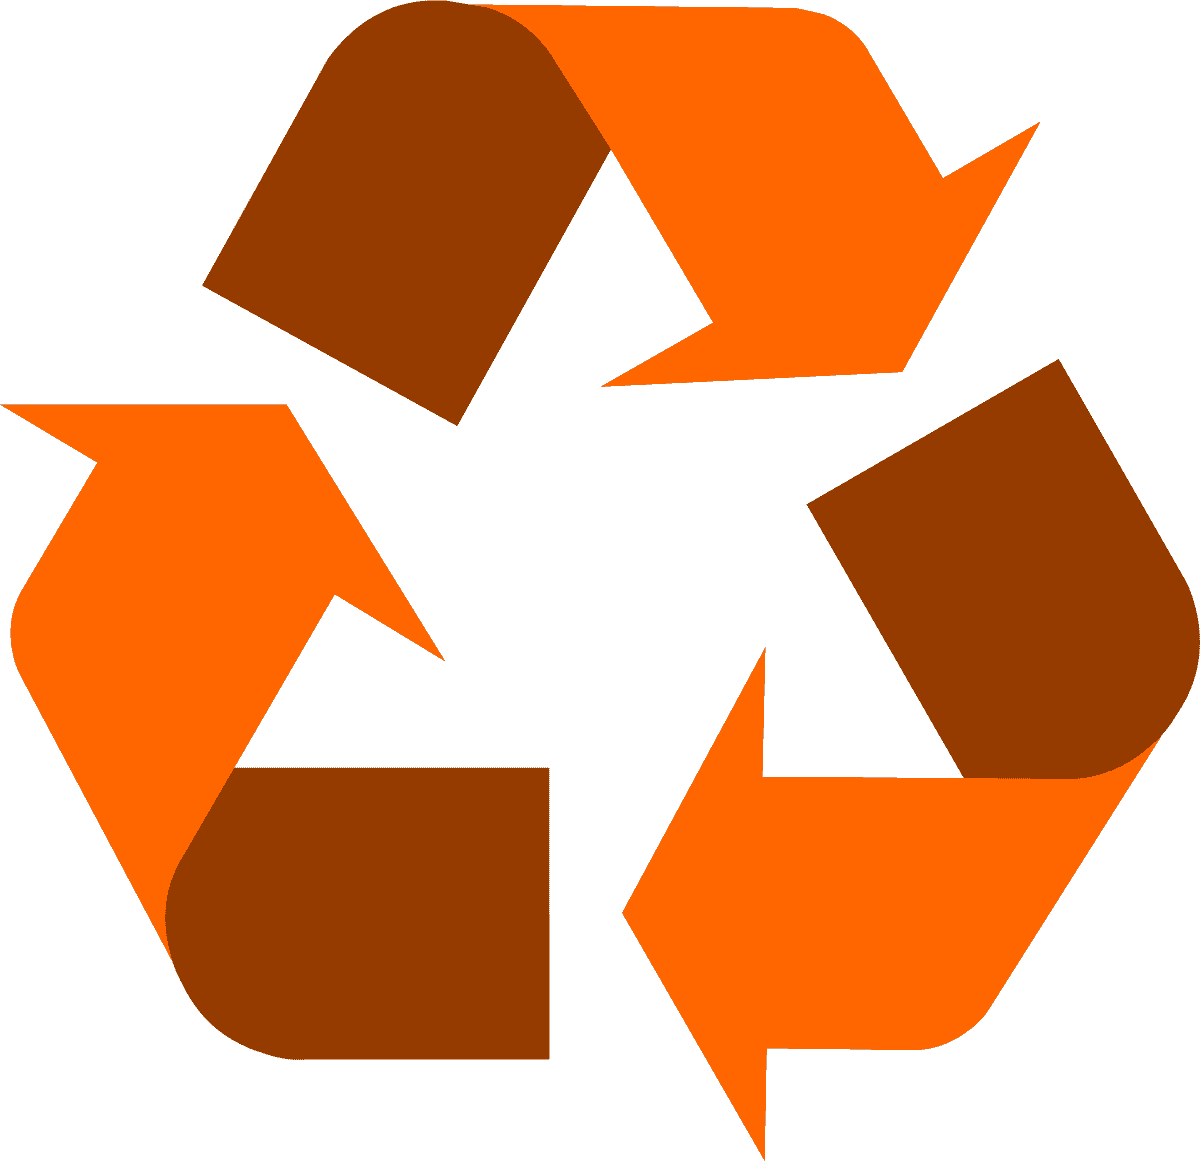 recycling-symbol-icon-twotone-orange